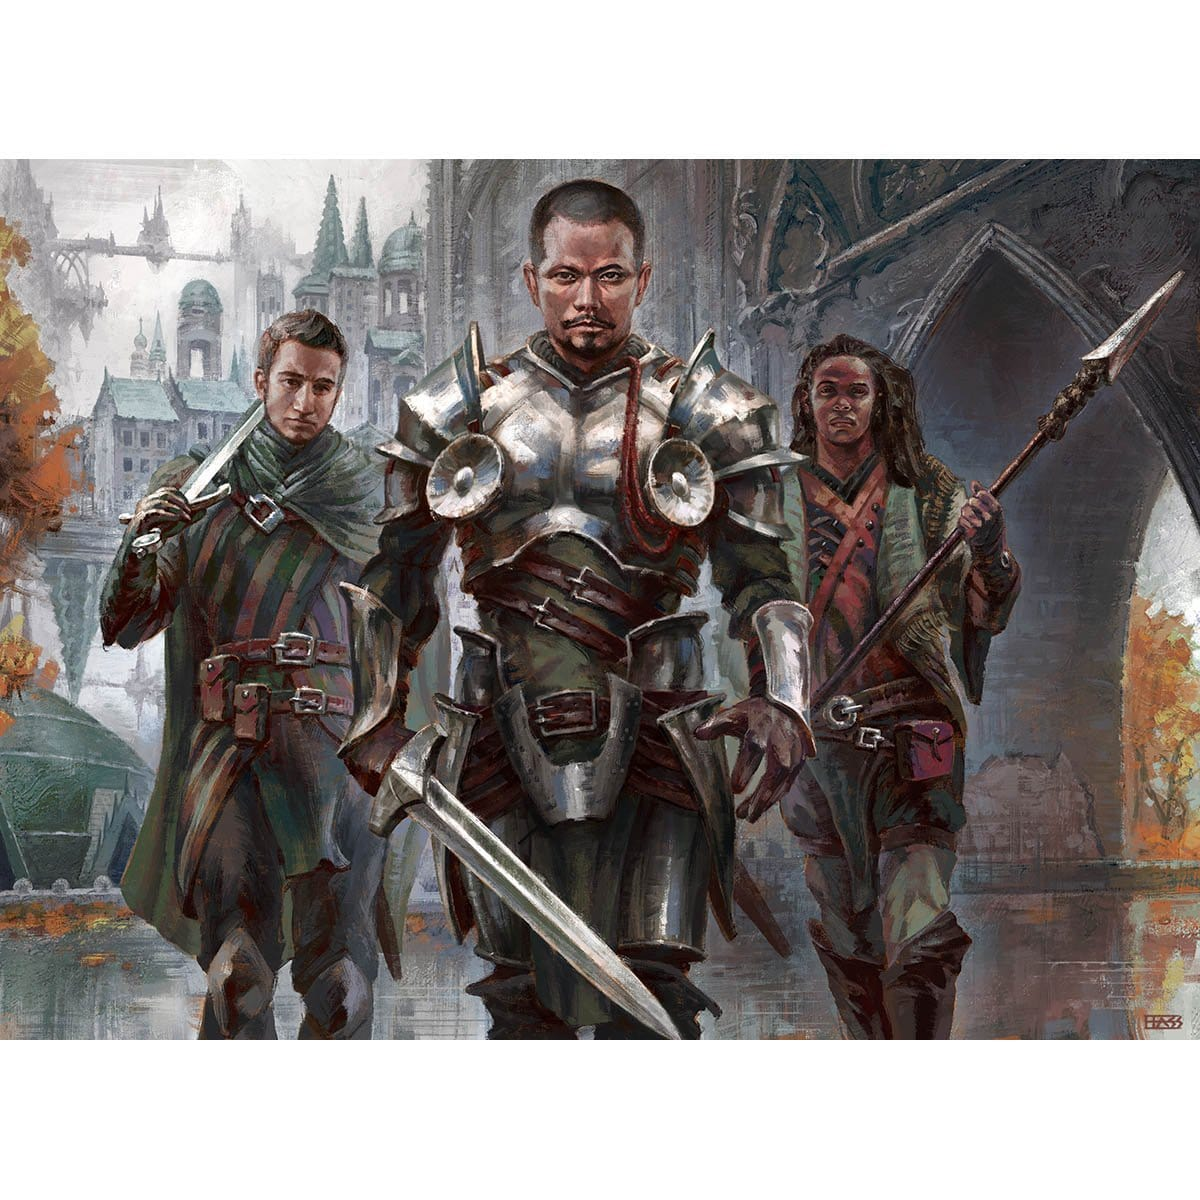 Haazda Marshal Print - Print - Original Magic Art - Accessories for Magic the Gathering and other card games